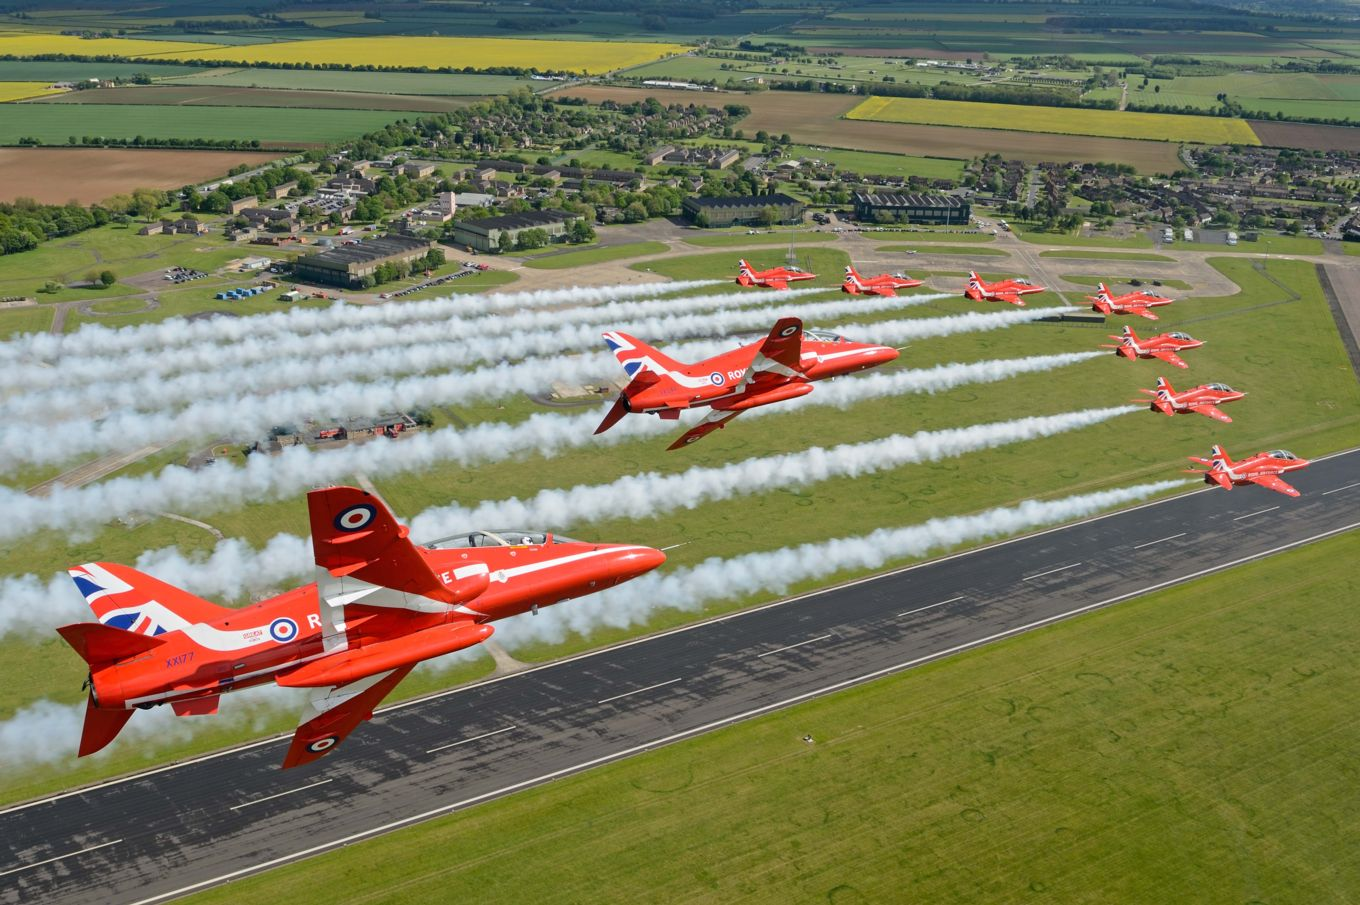 RAF Scampton - the base presently home to the Red Arrows.